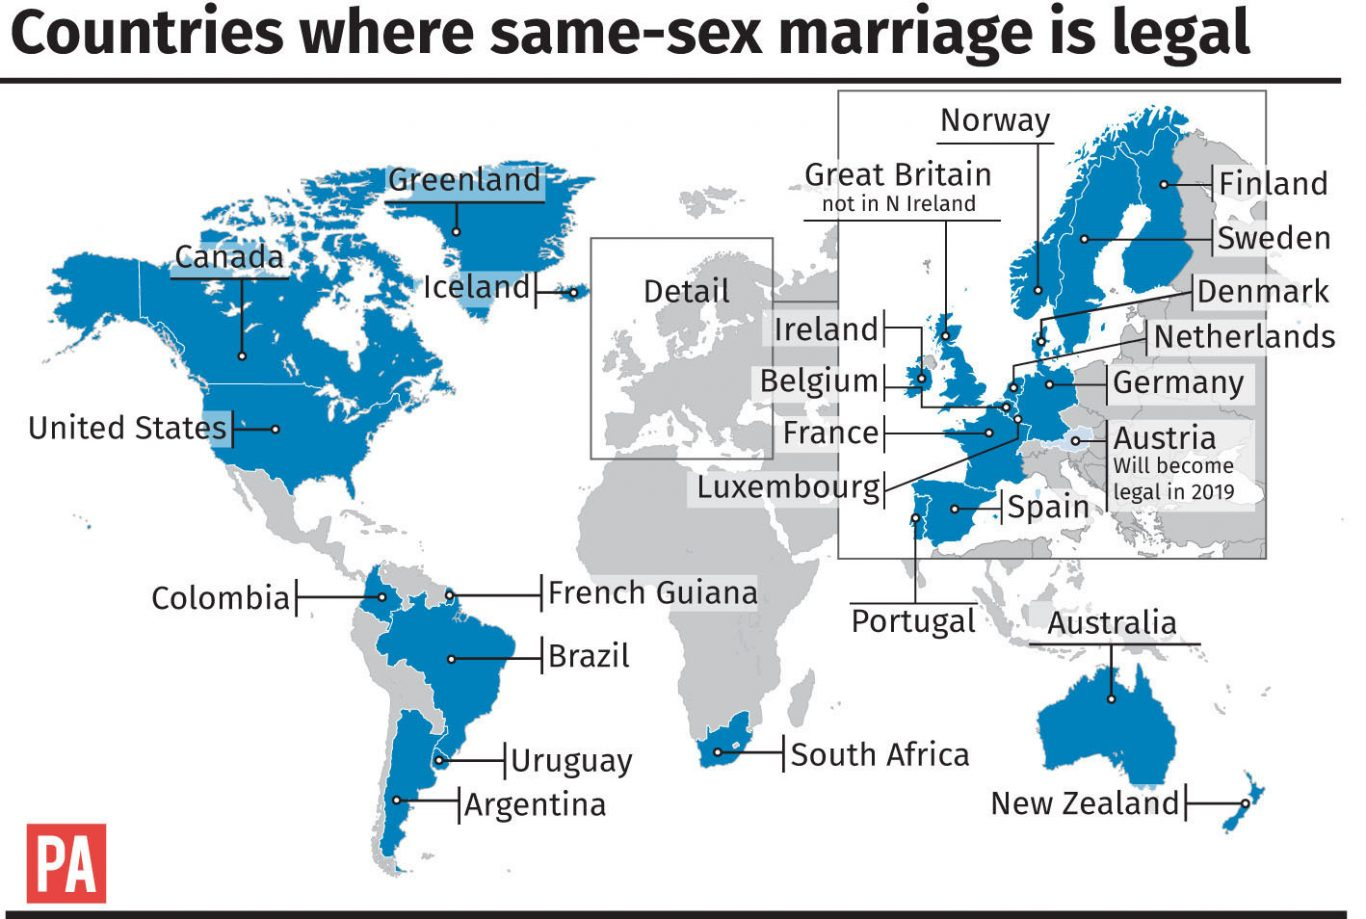 Countries where same-sex marriage is legal